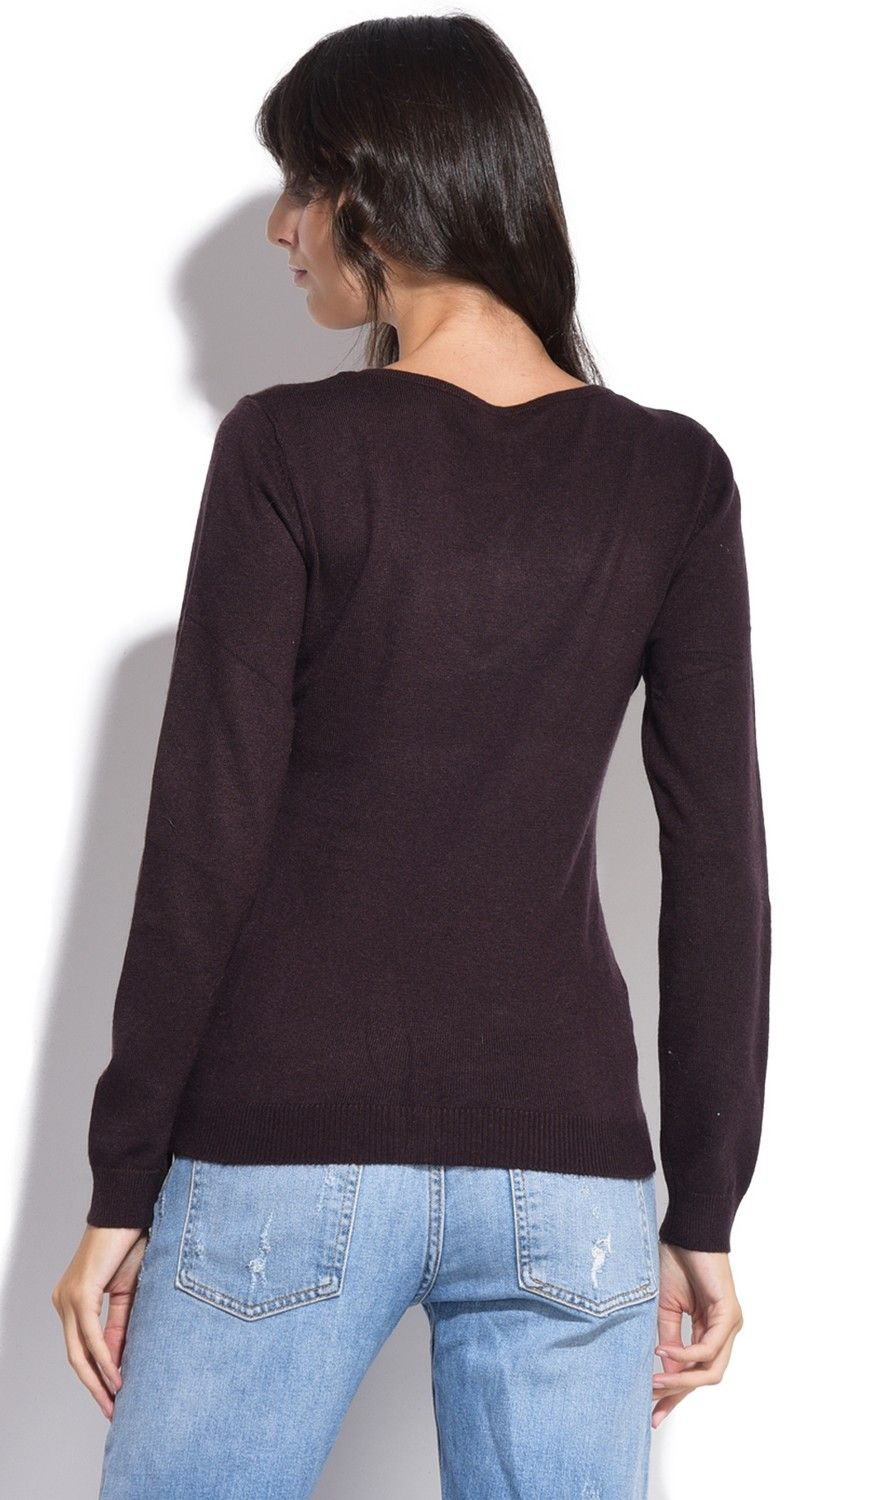 William De Faye V-Neck Long Sleeve Sweater in Brown